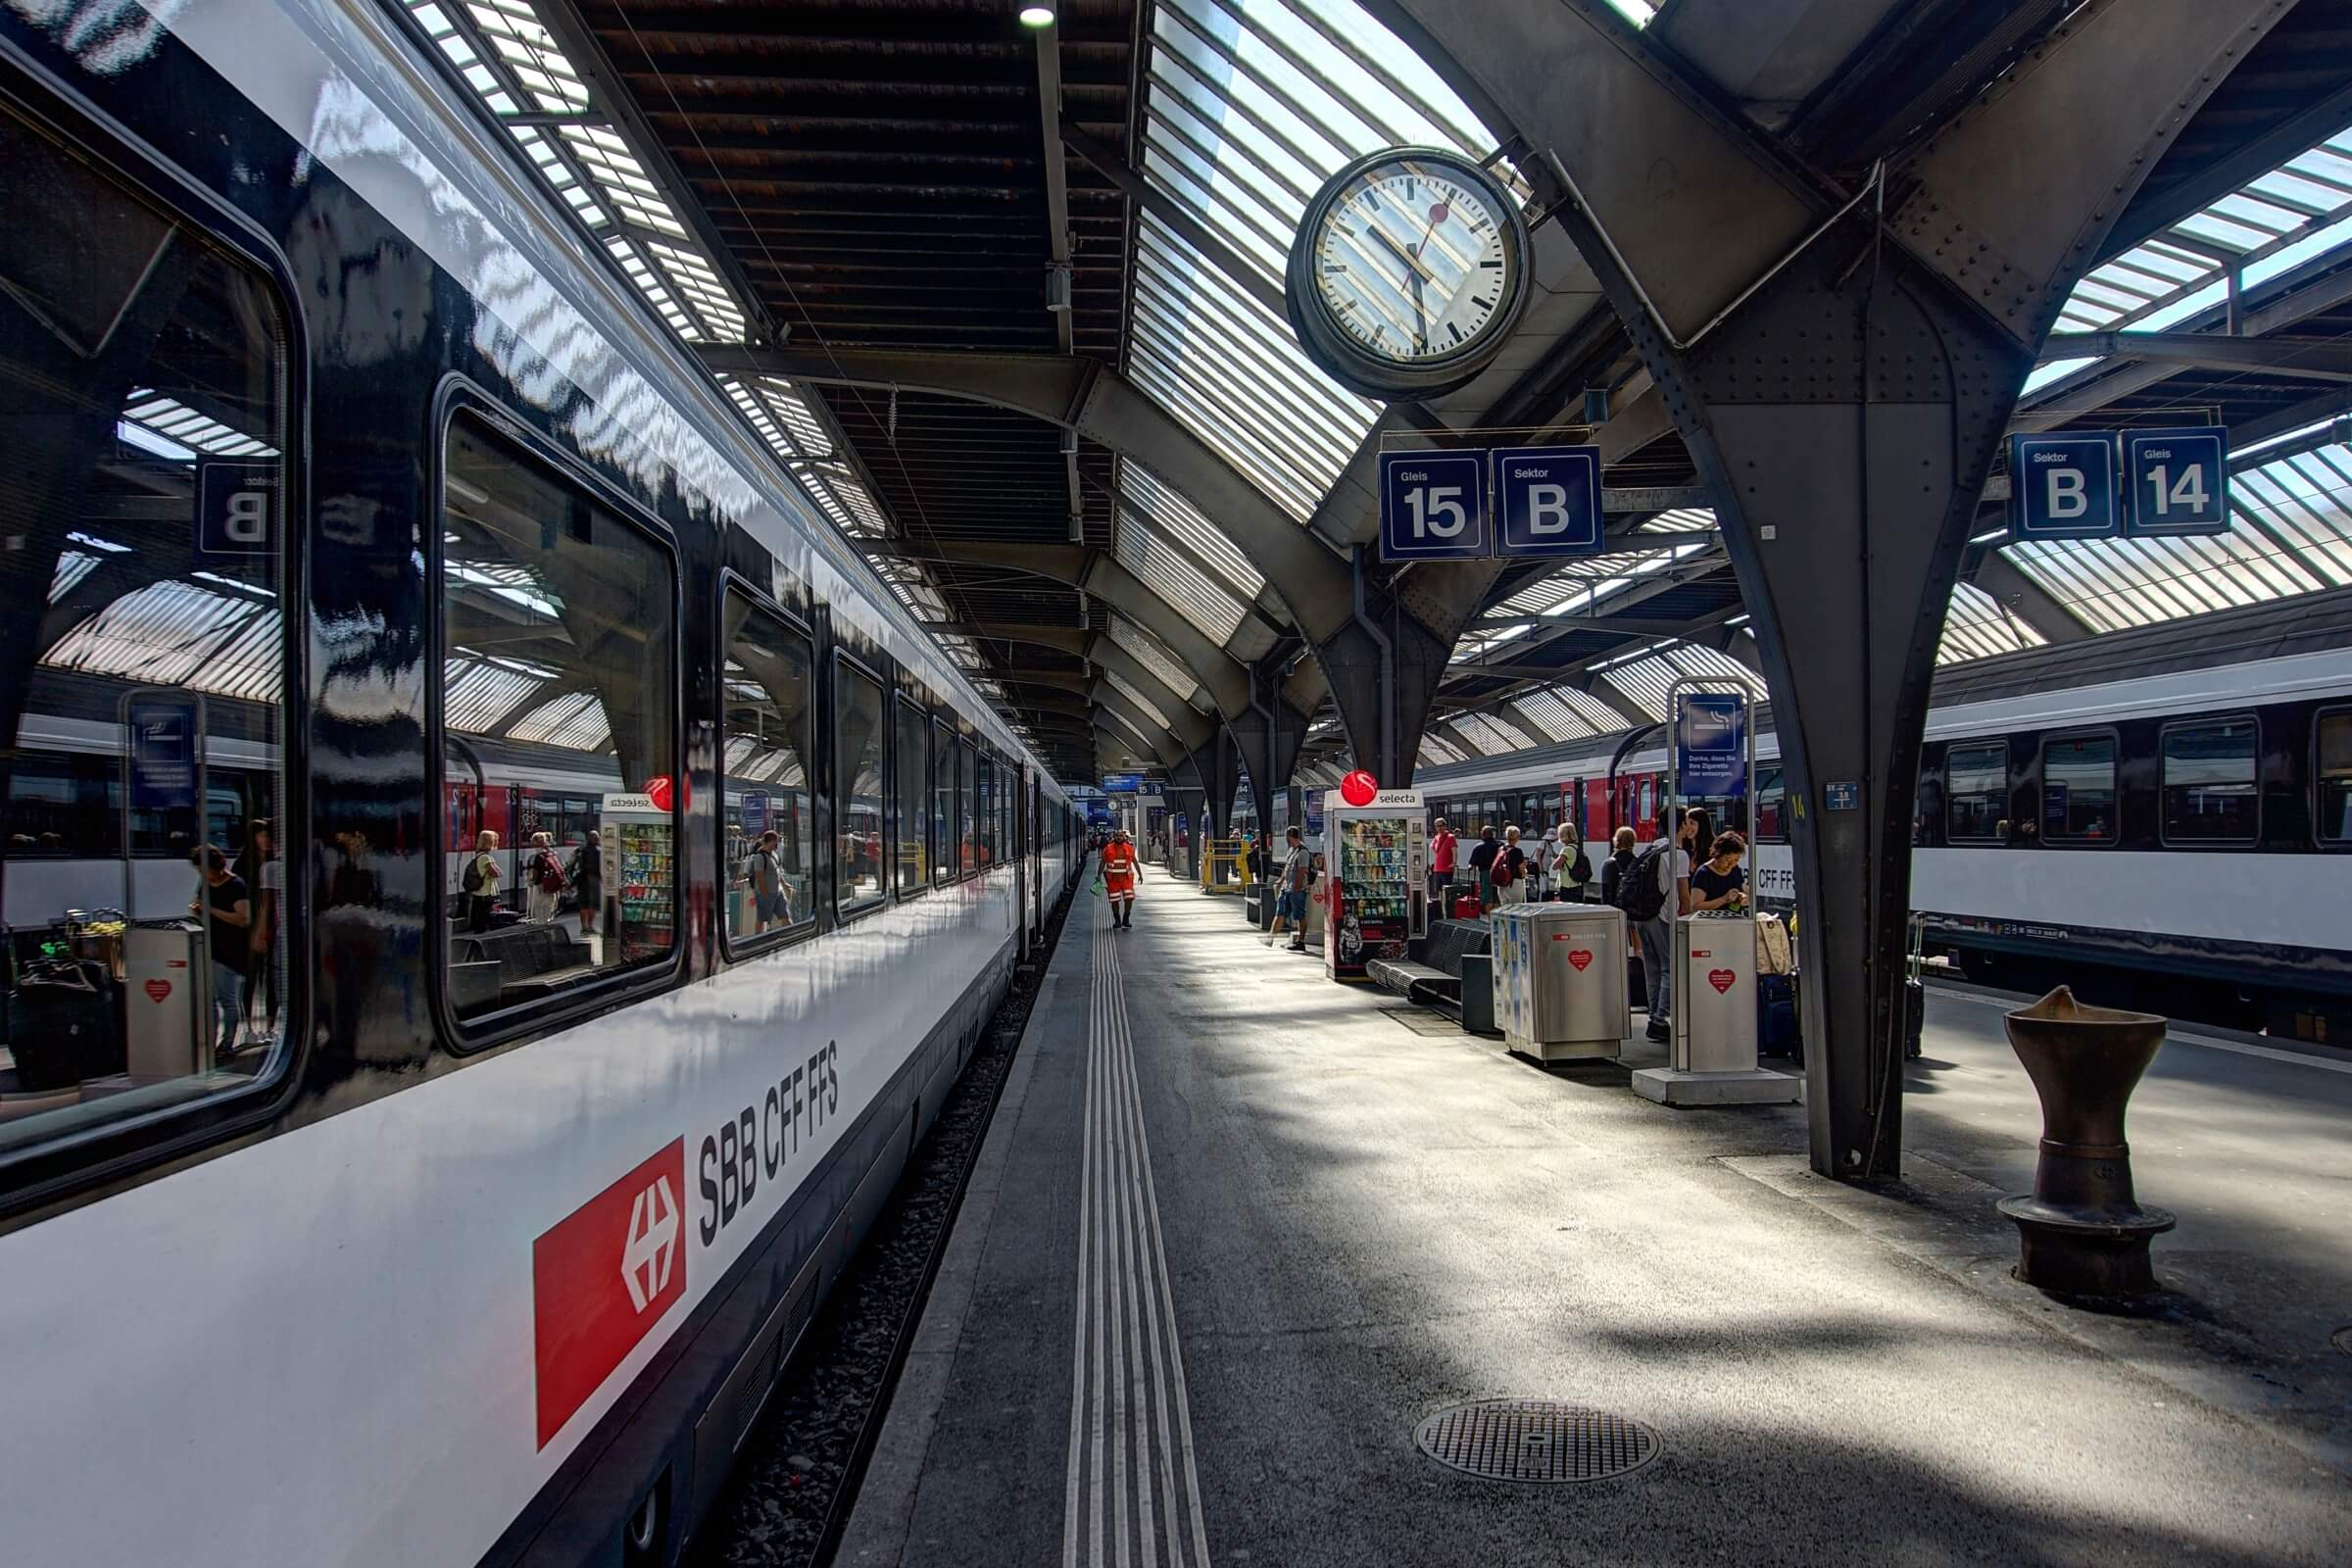 Public transport in Switzerland is punctual and efficient